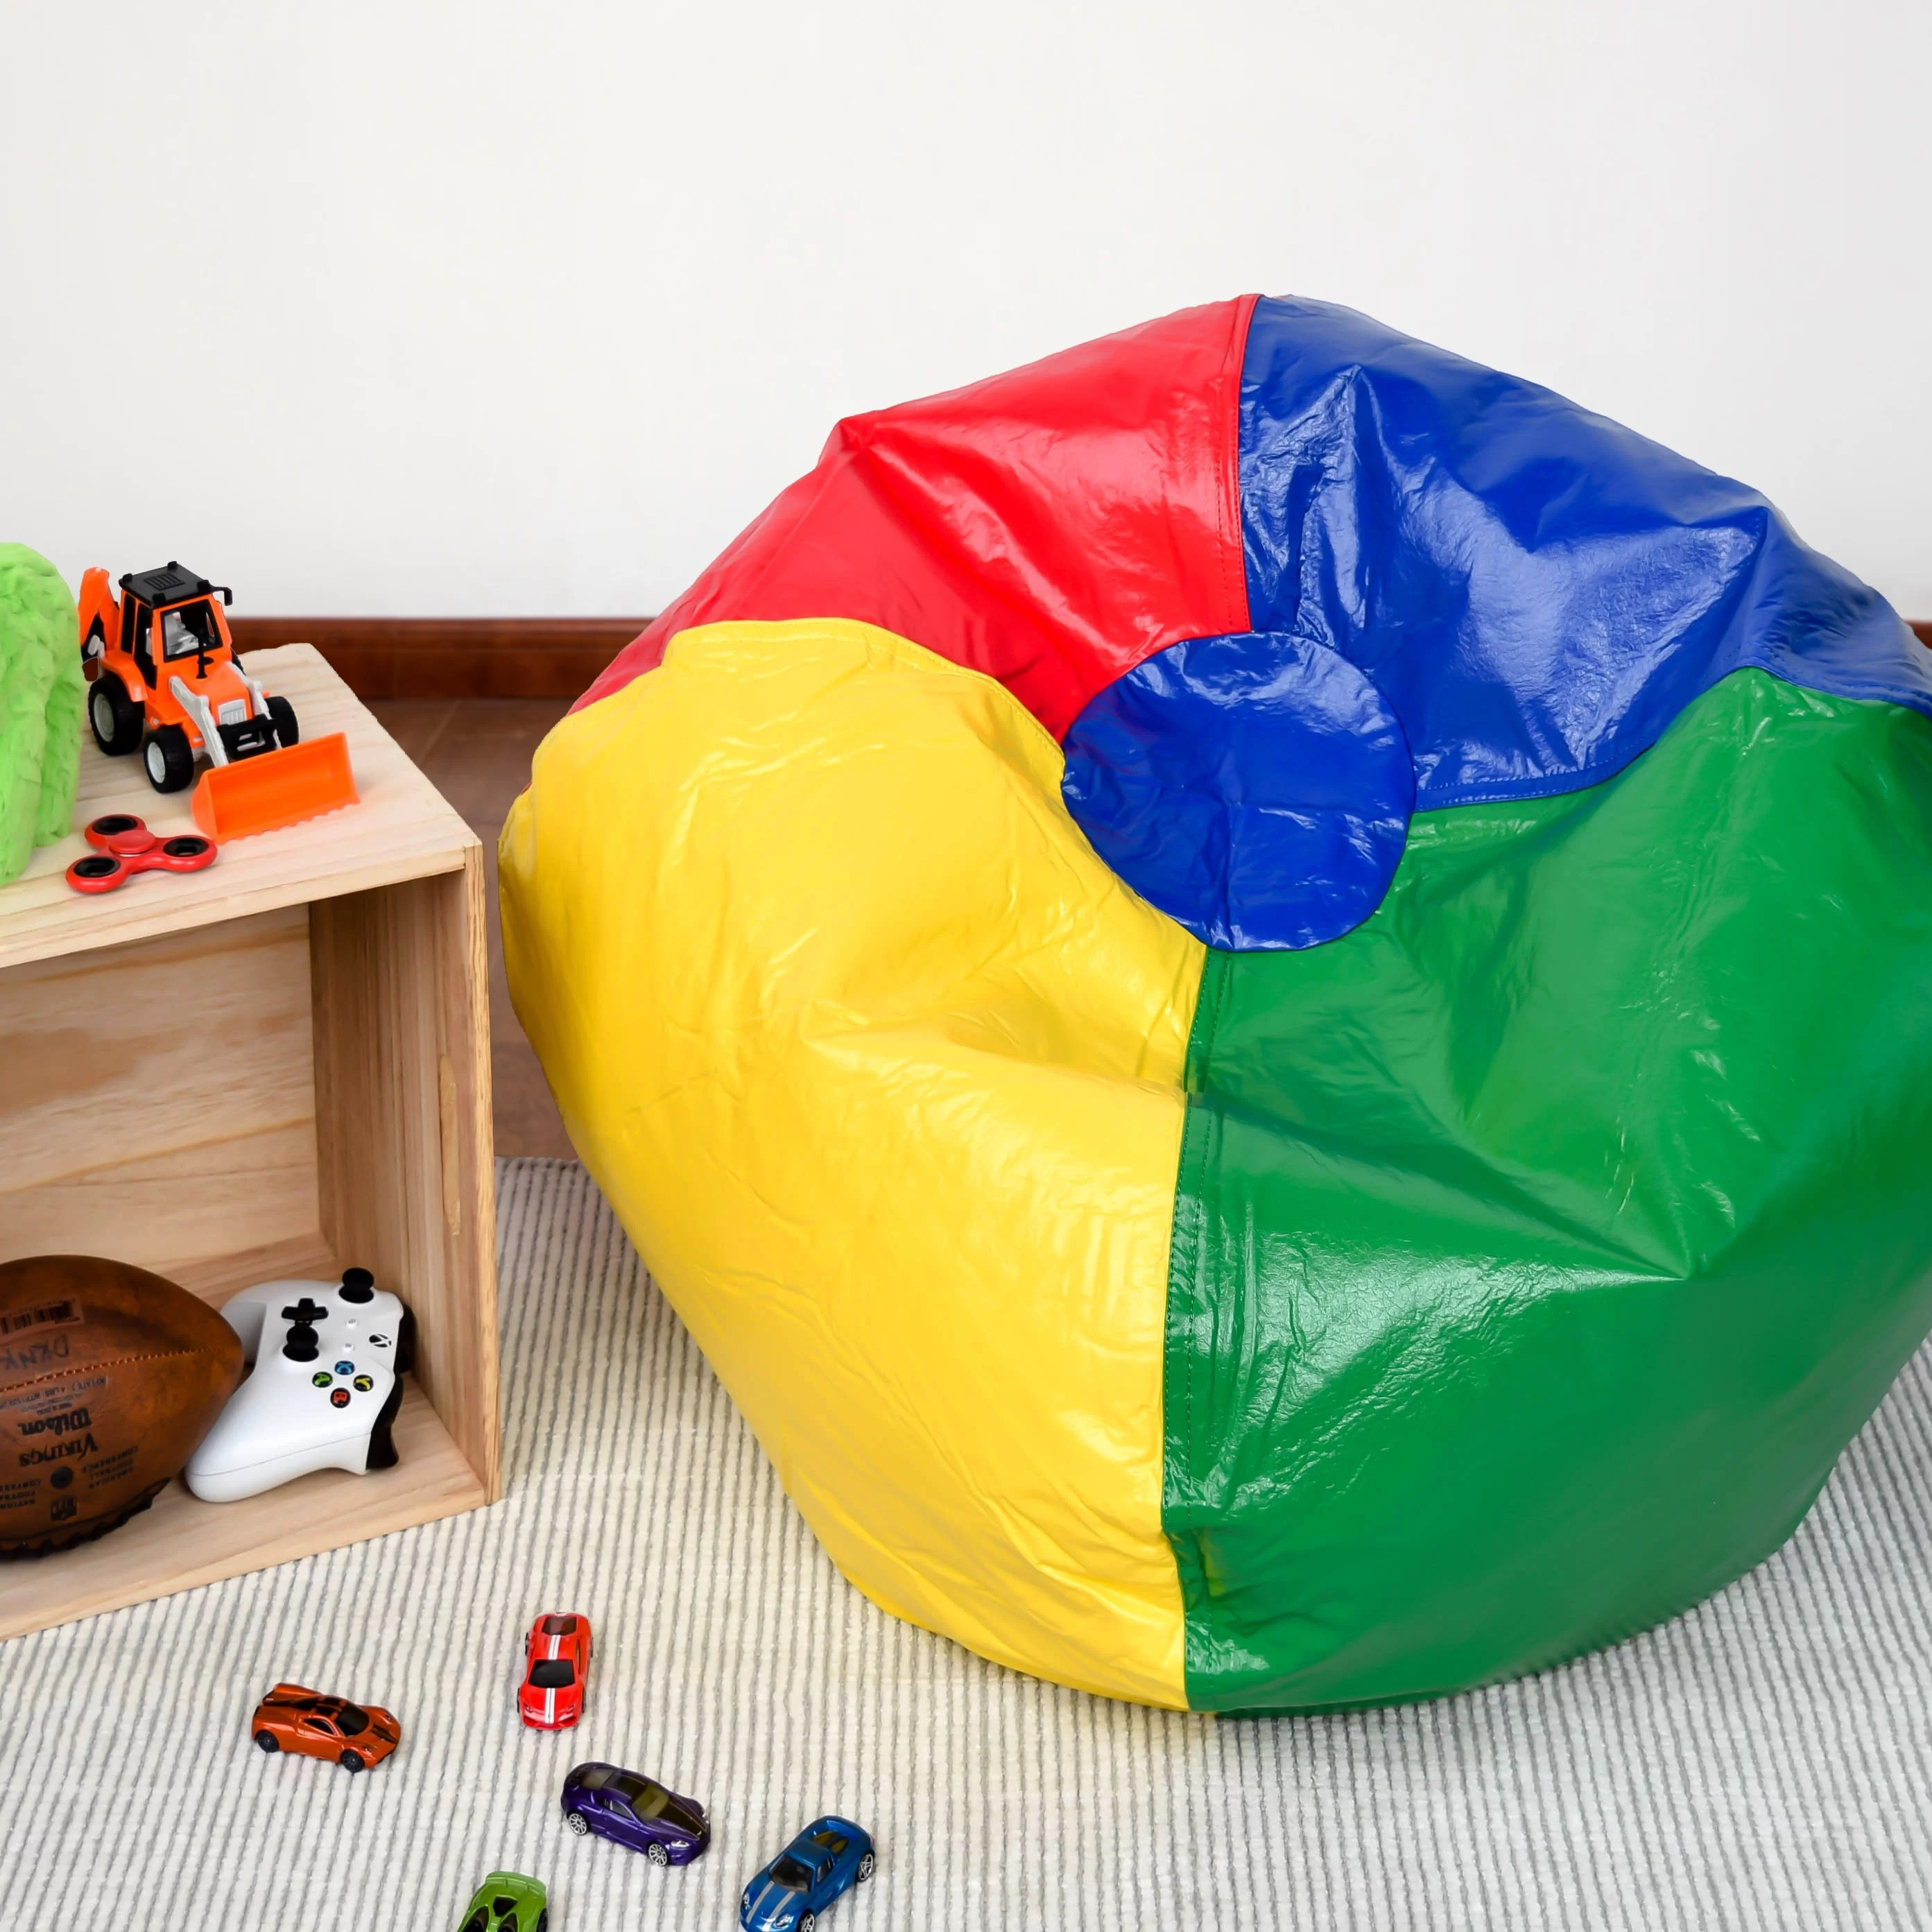 Basketball Bean Bag Chair Bean Bag Chair